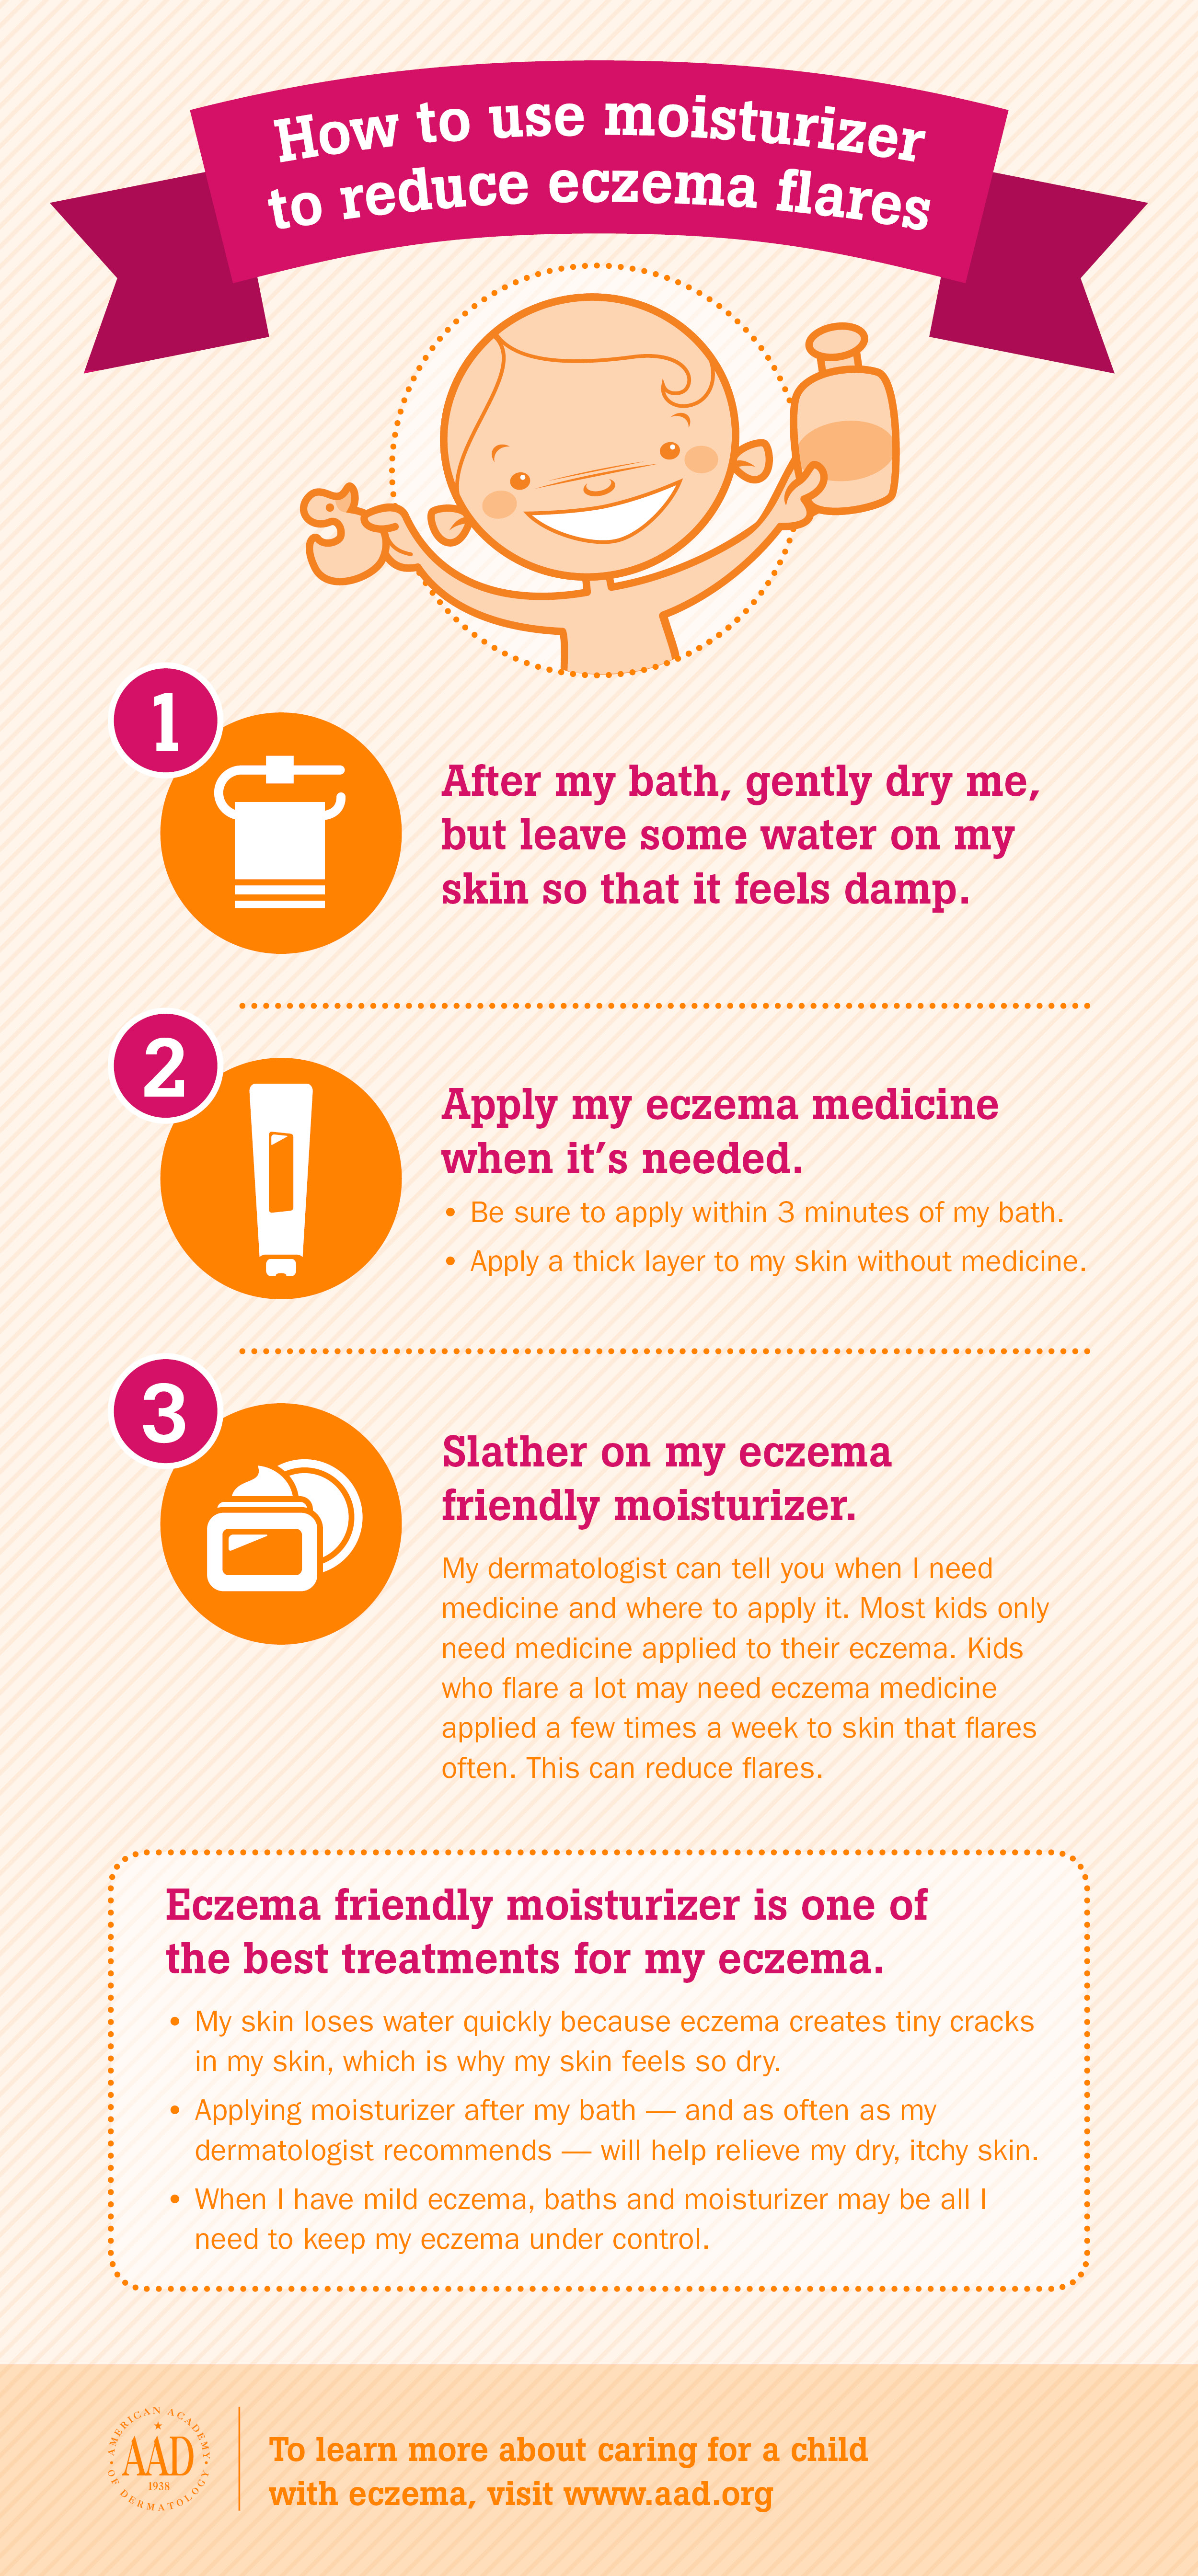 How to use moisturizer to reduce eczema flares infographic